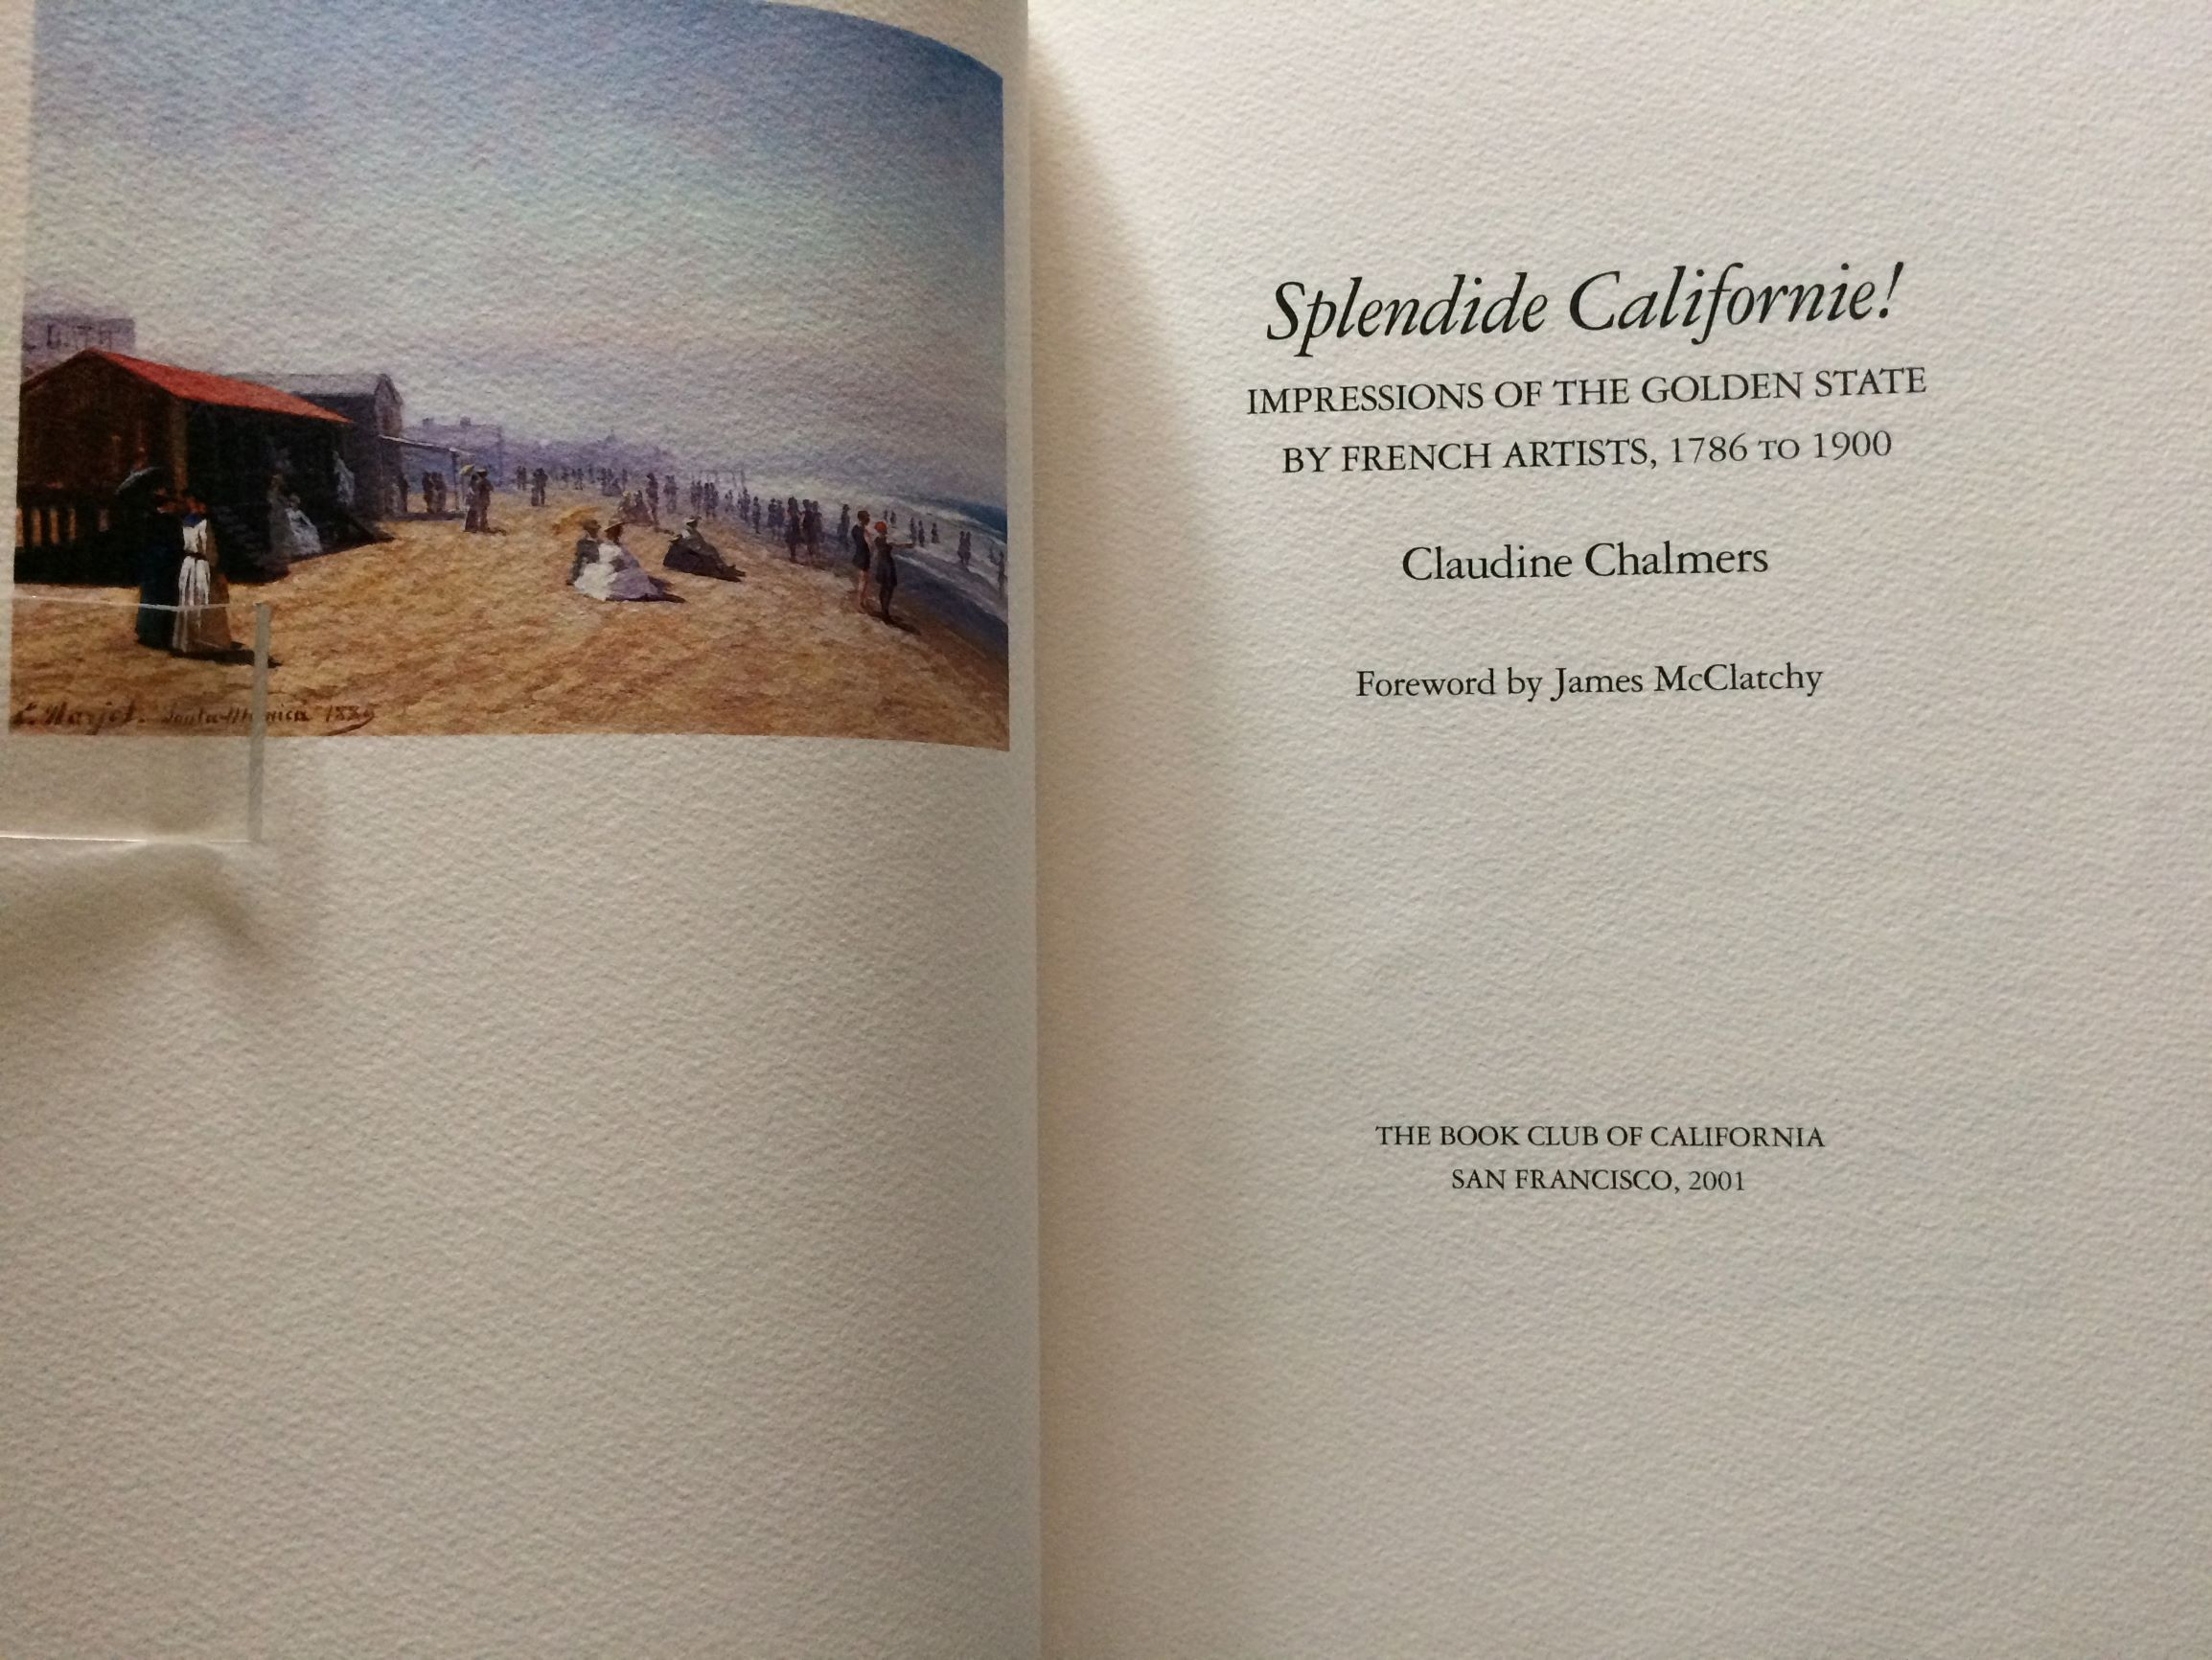 Image for Splendide Californie! Impressions of the Golden State by French Artists, 1786 to 1900.